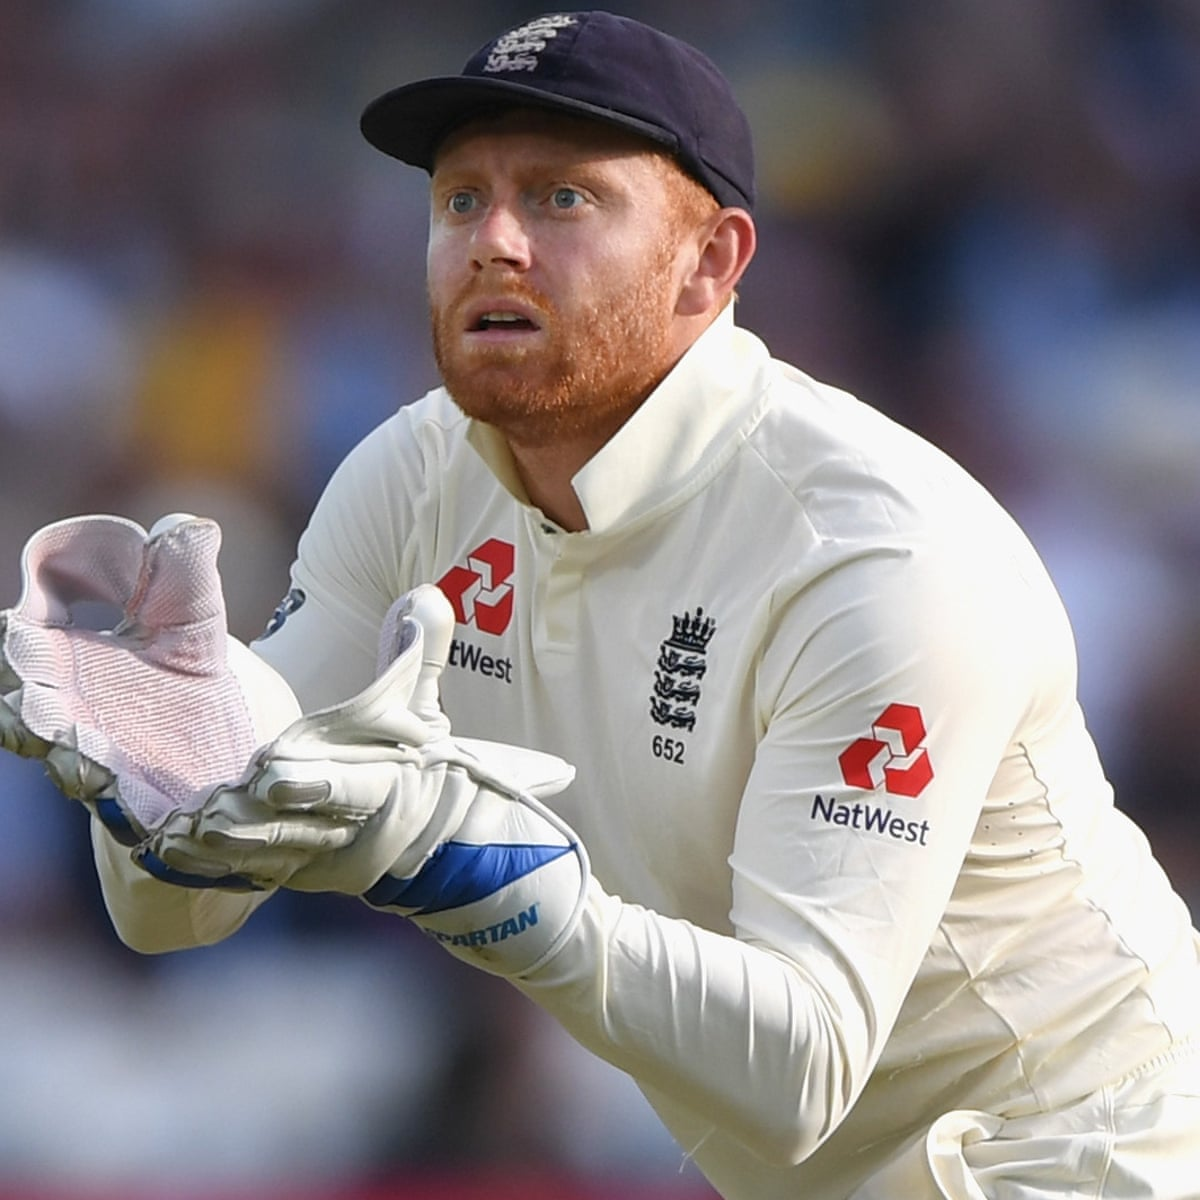 Jonny Bairstow still eager to regain gloves as England Test wicketkeeper |  England cricket team | The Guardian